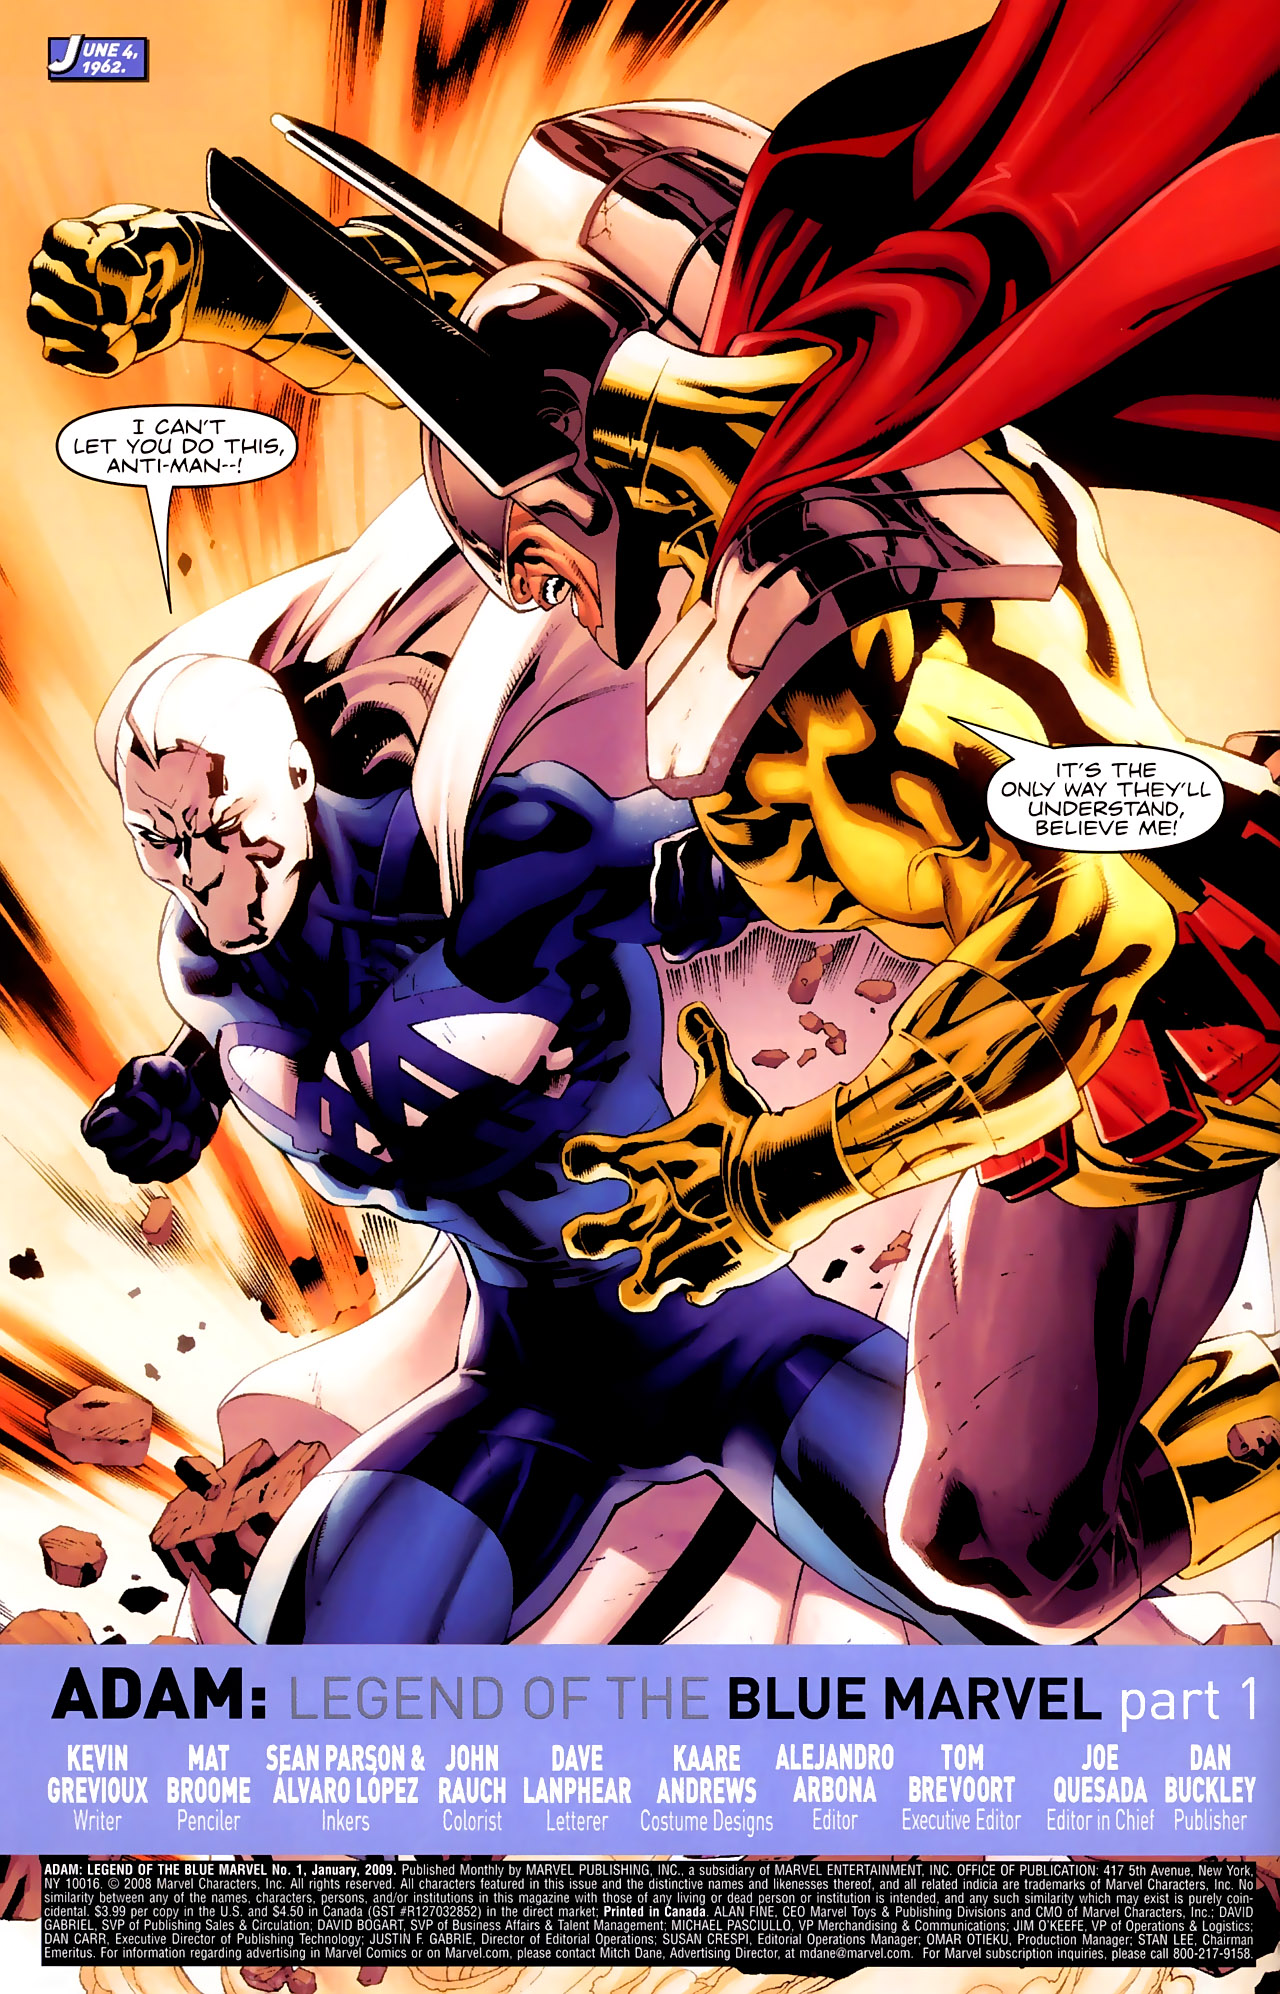 Read online Adam: Legend of the Blue Marvel comic -  Issue #1 - 7